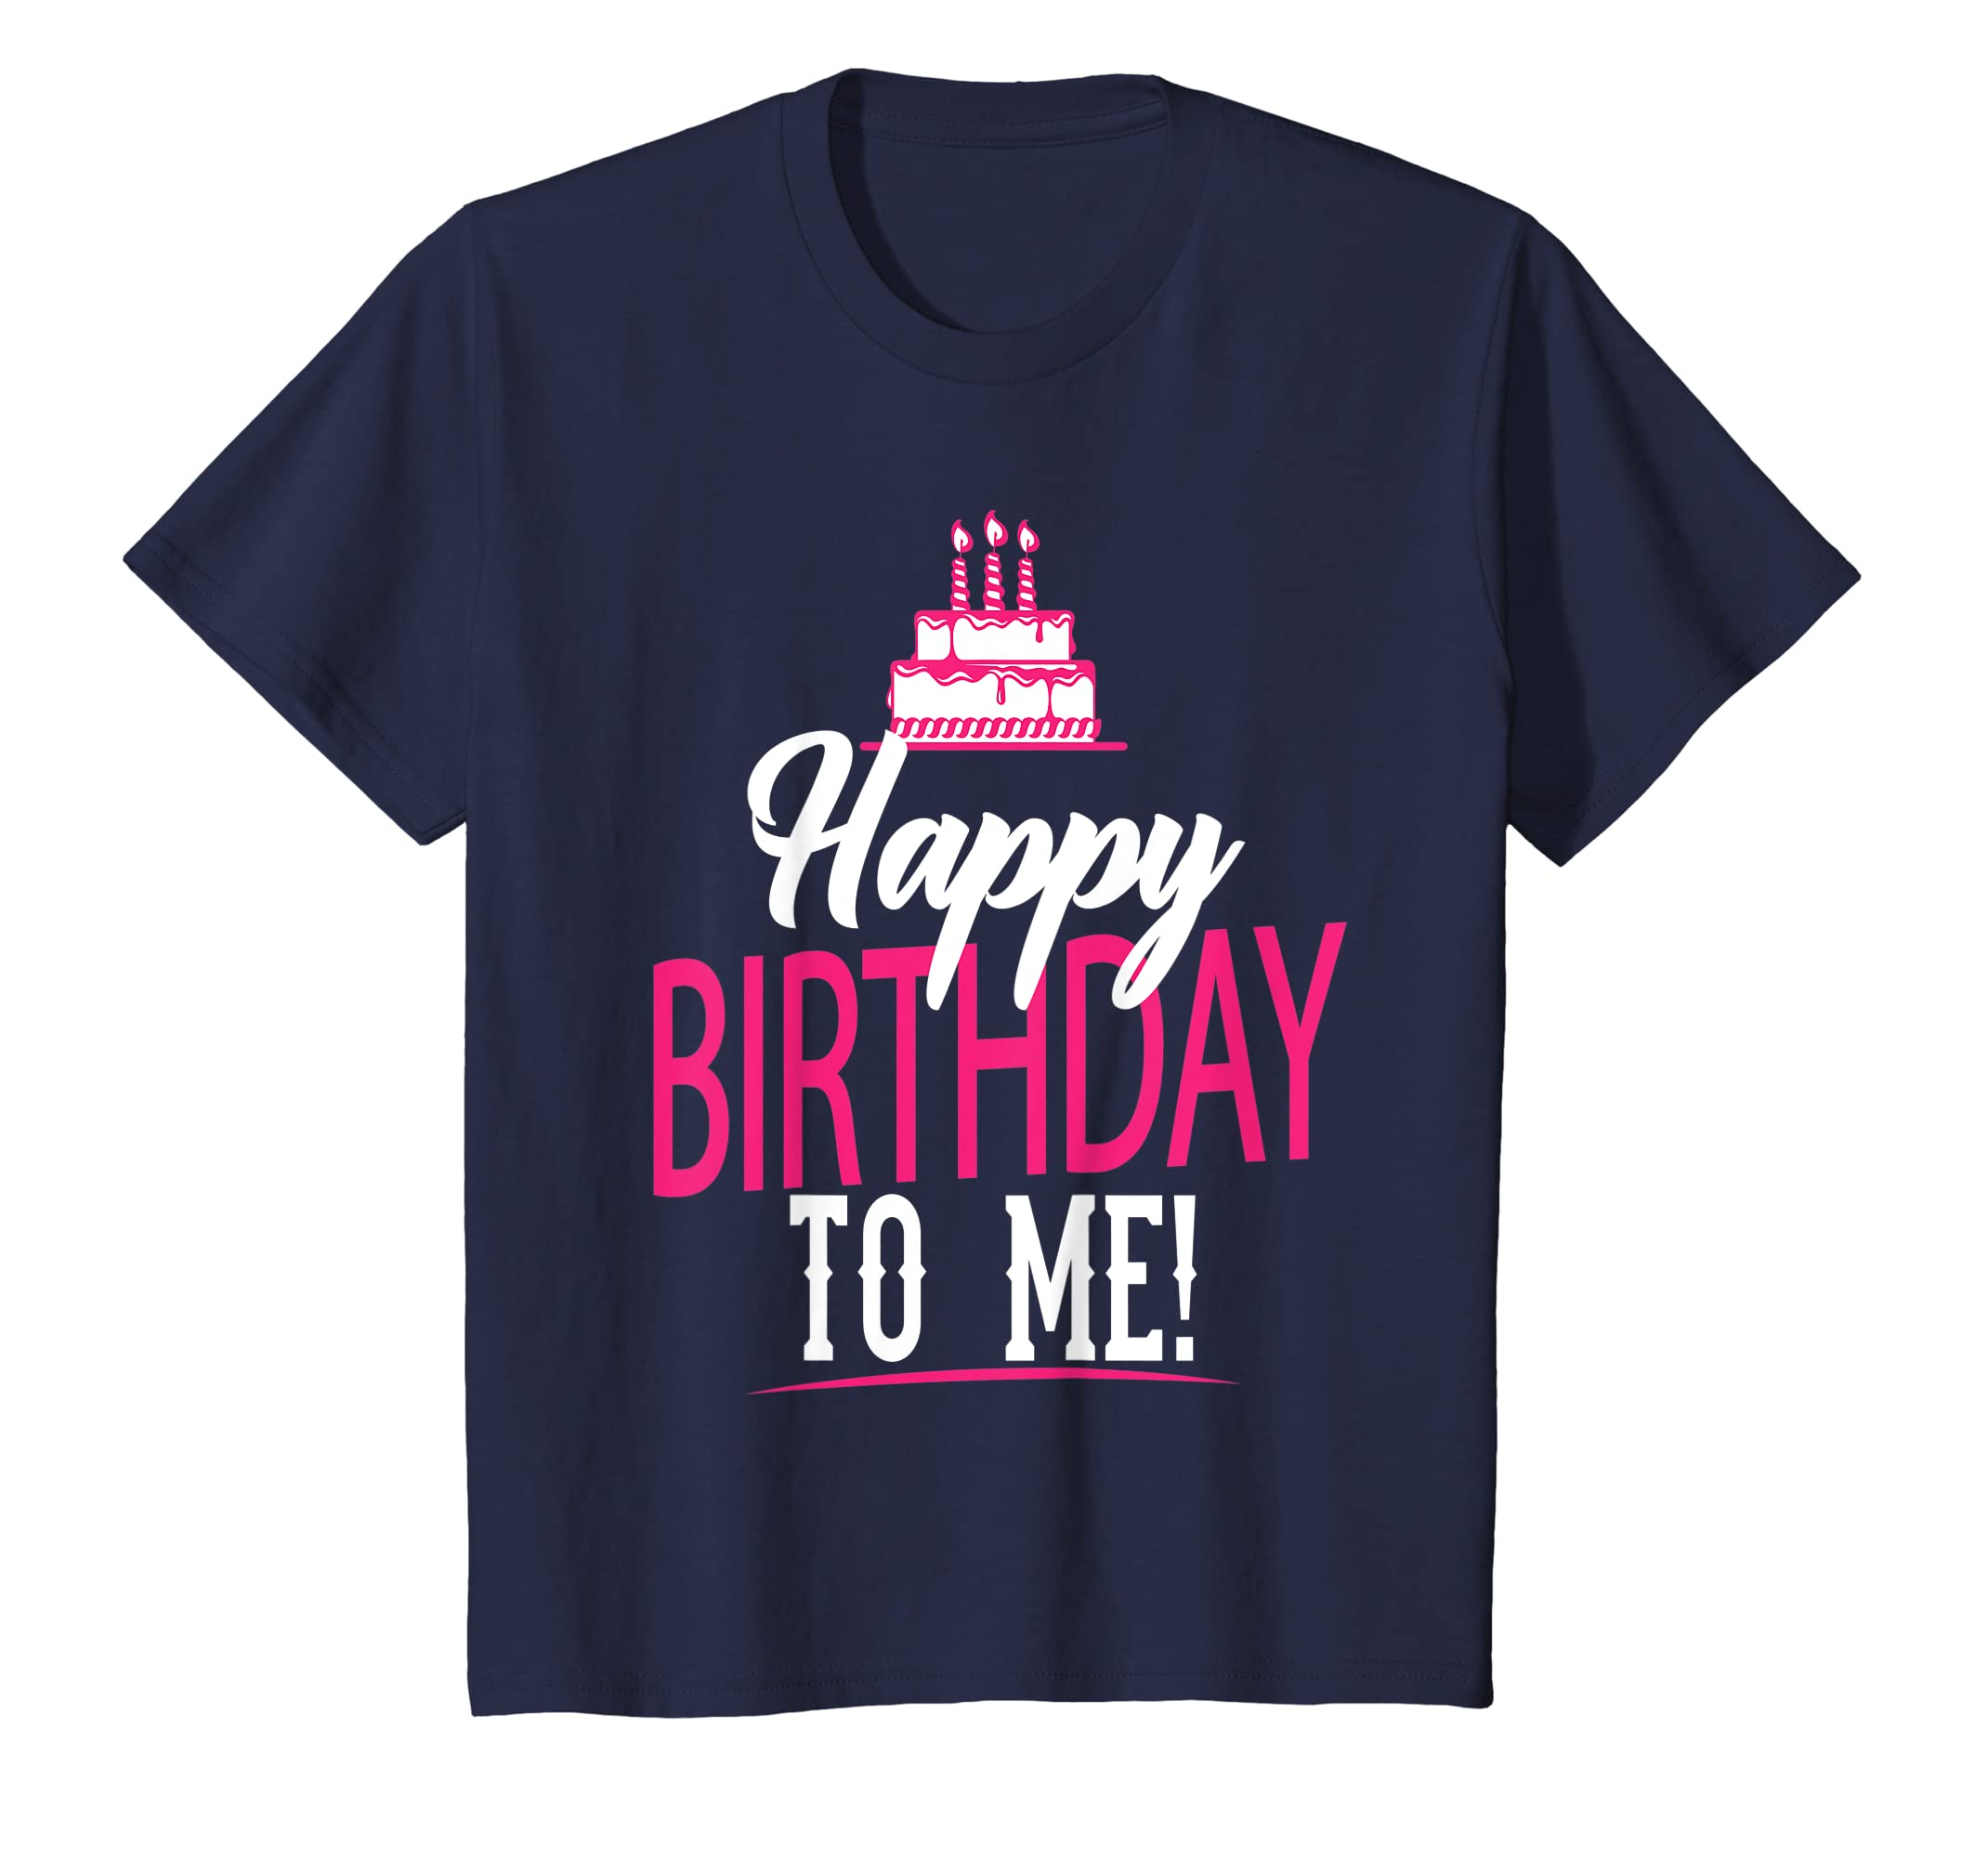 Amazon Happy Birthday To Me T Shirt For Women Girls Pink Text Clothing